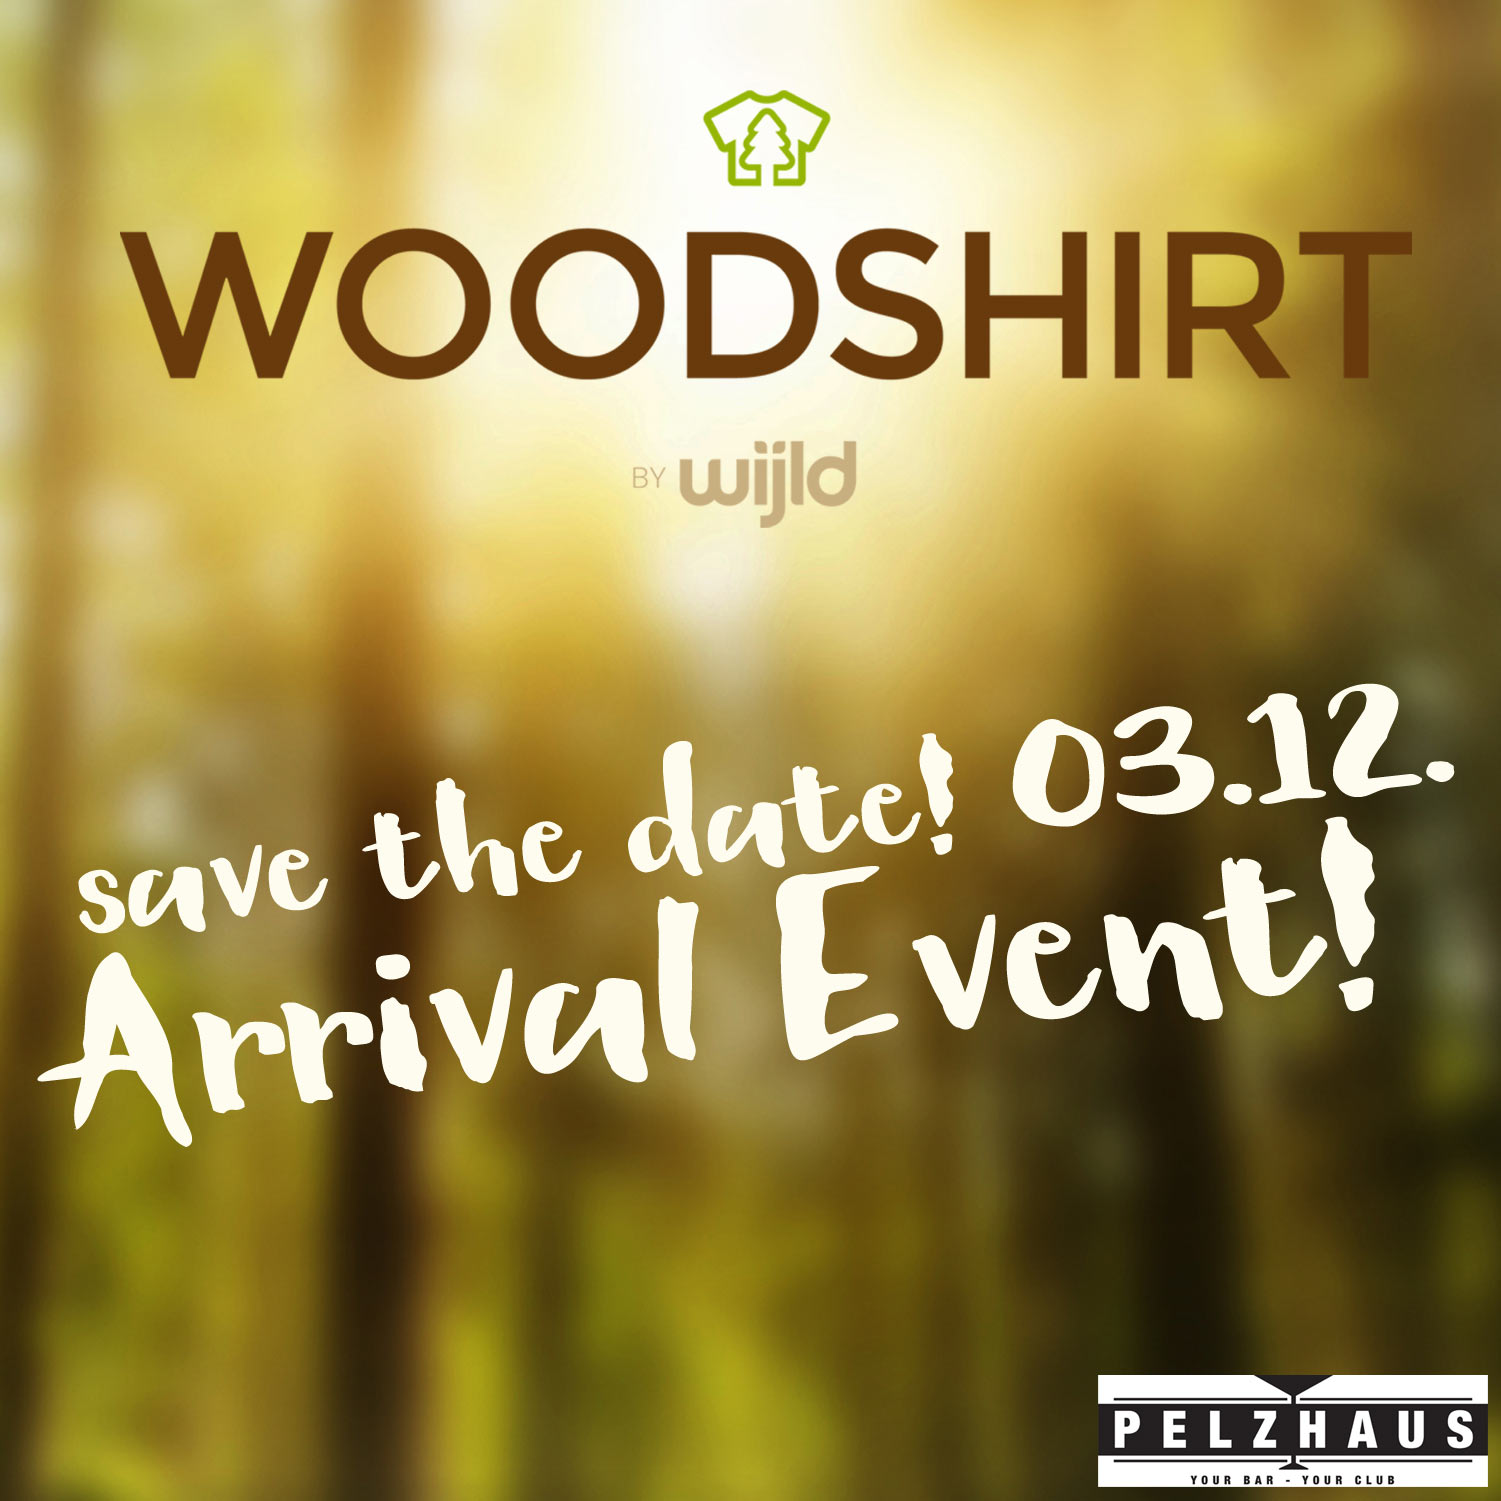 Event: 03.12. WoodShirt Arrival!